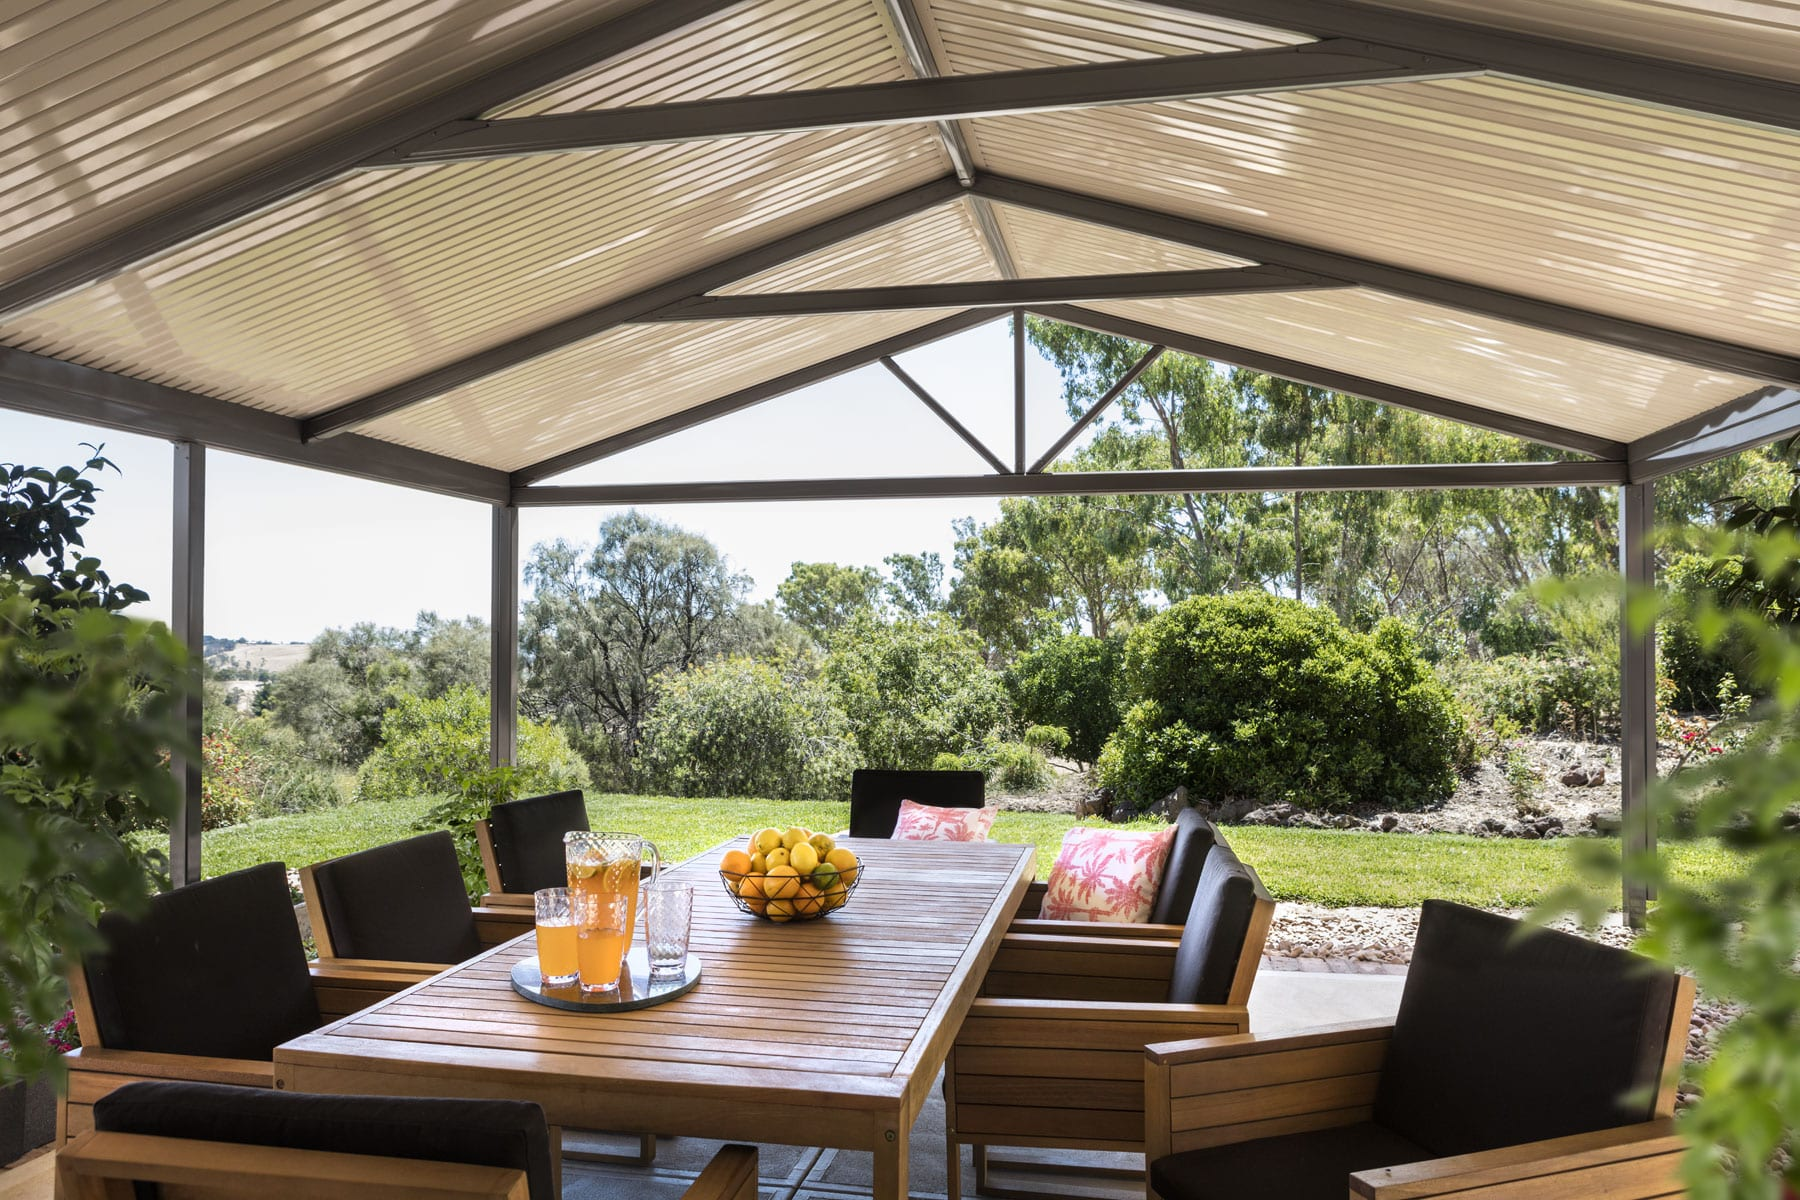 Gable Patio Design Amp Construction Aussie Patio Designs